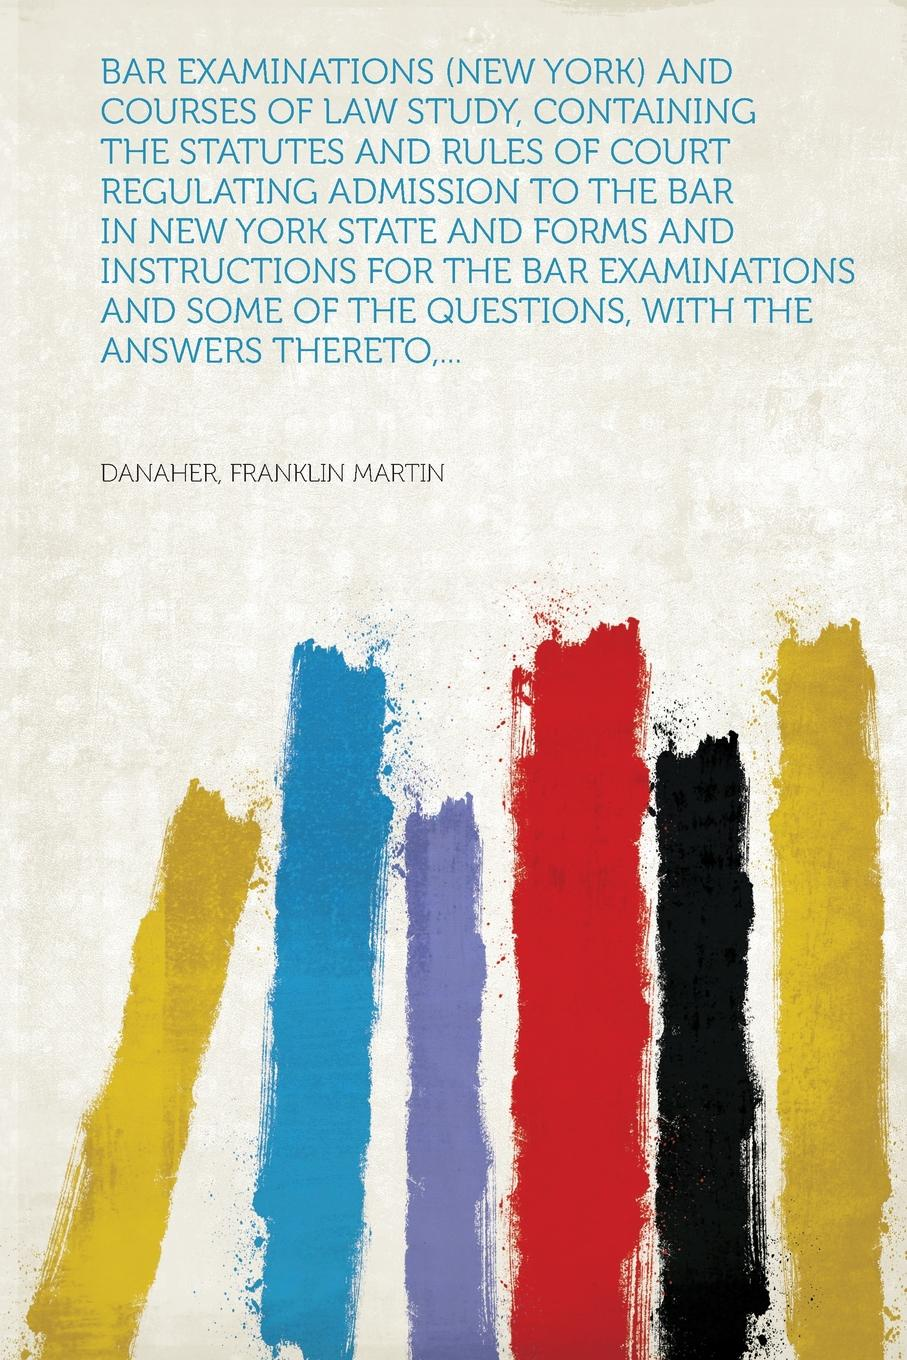 где купить Danaher Franklin Martin Bar Examinations (New York) and Courses of Law Study, Containing the Statutes and Rules of Court Regulating Admission to the Bar in New York State and Forms and Instructions for the Bar Examinations and Some of the Questions, With the Answers Ther... по лучшей цене